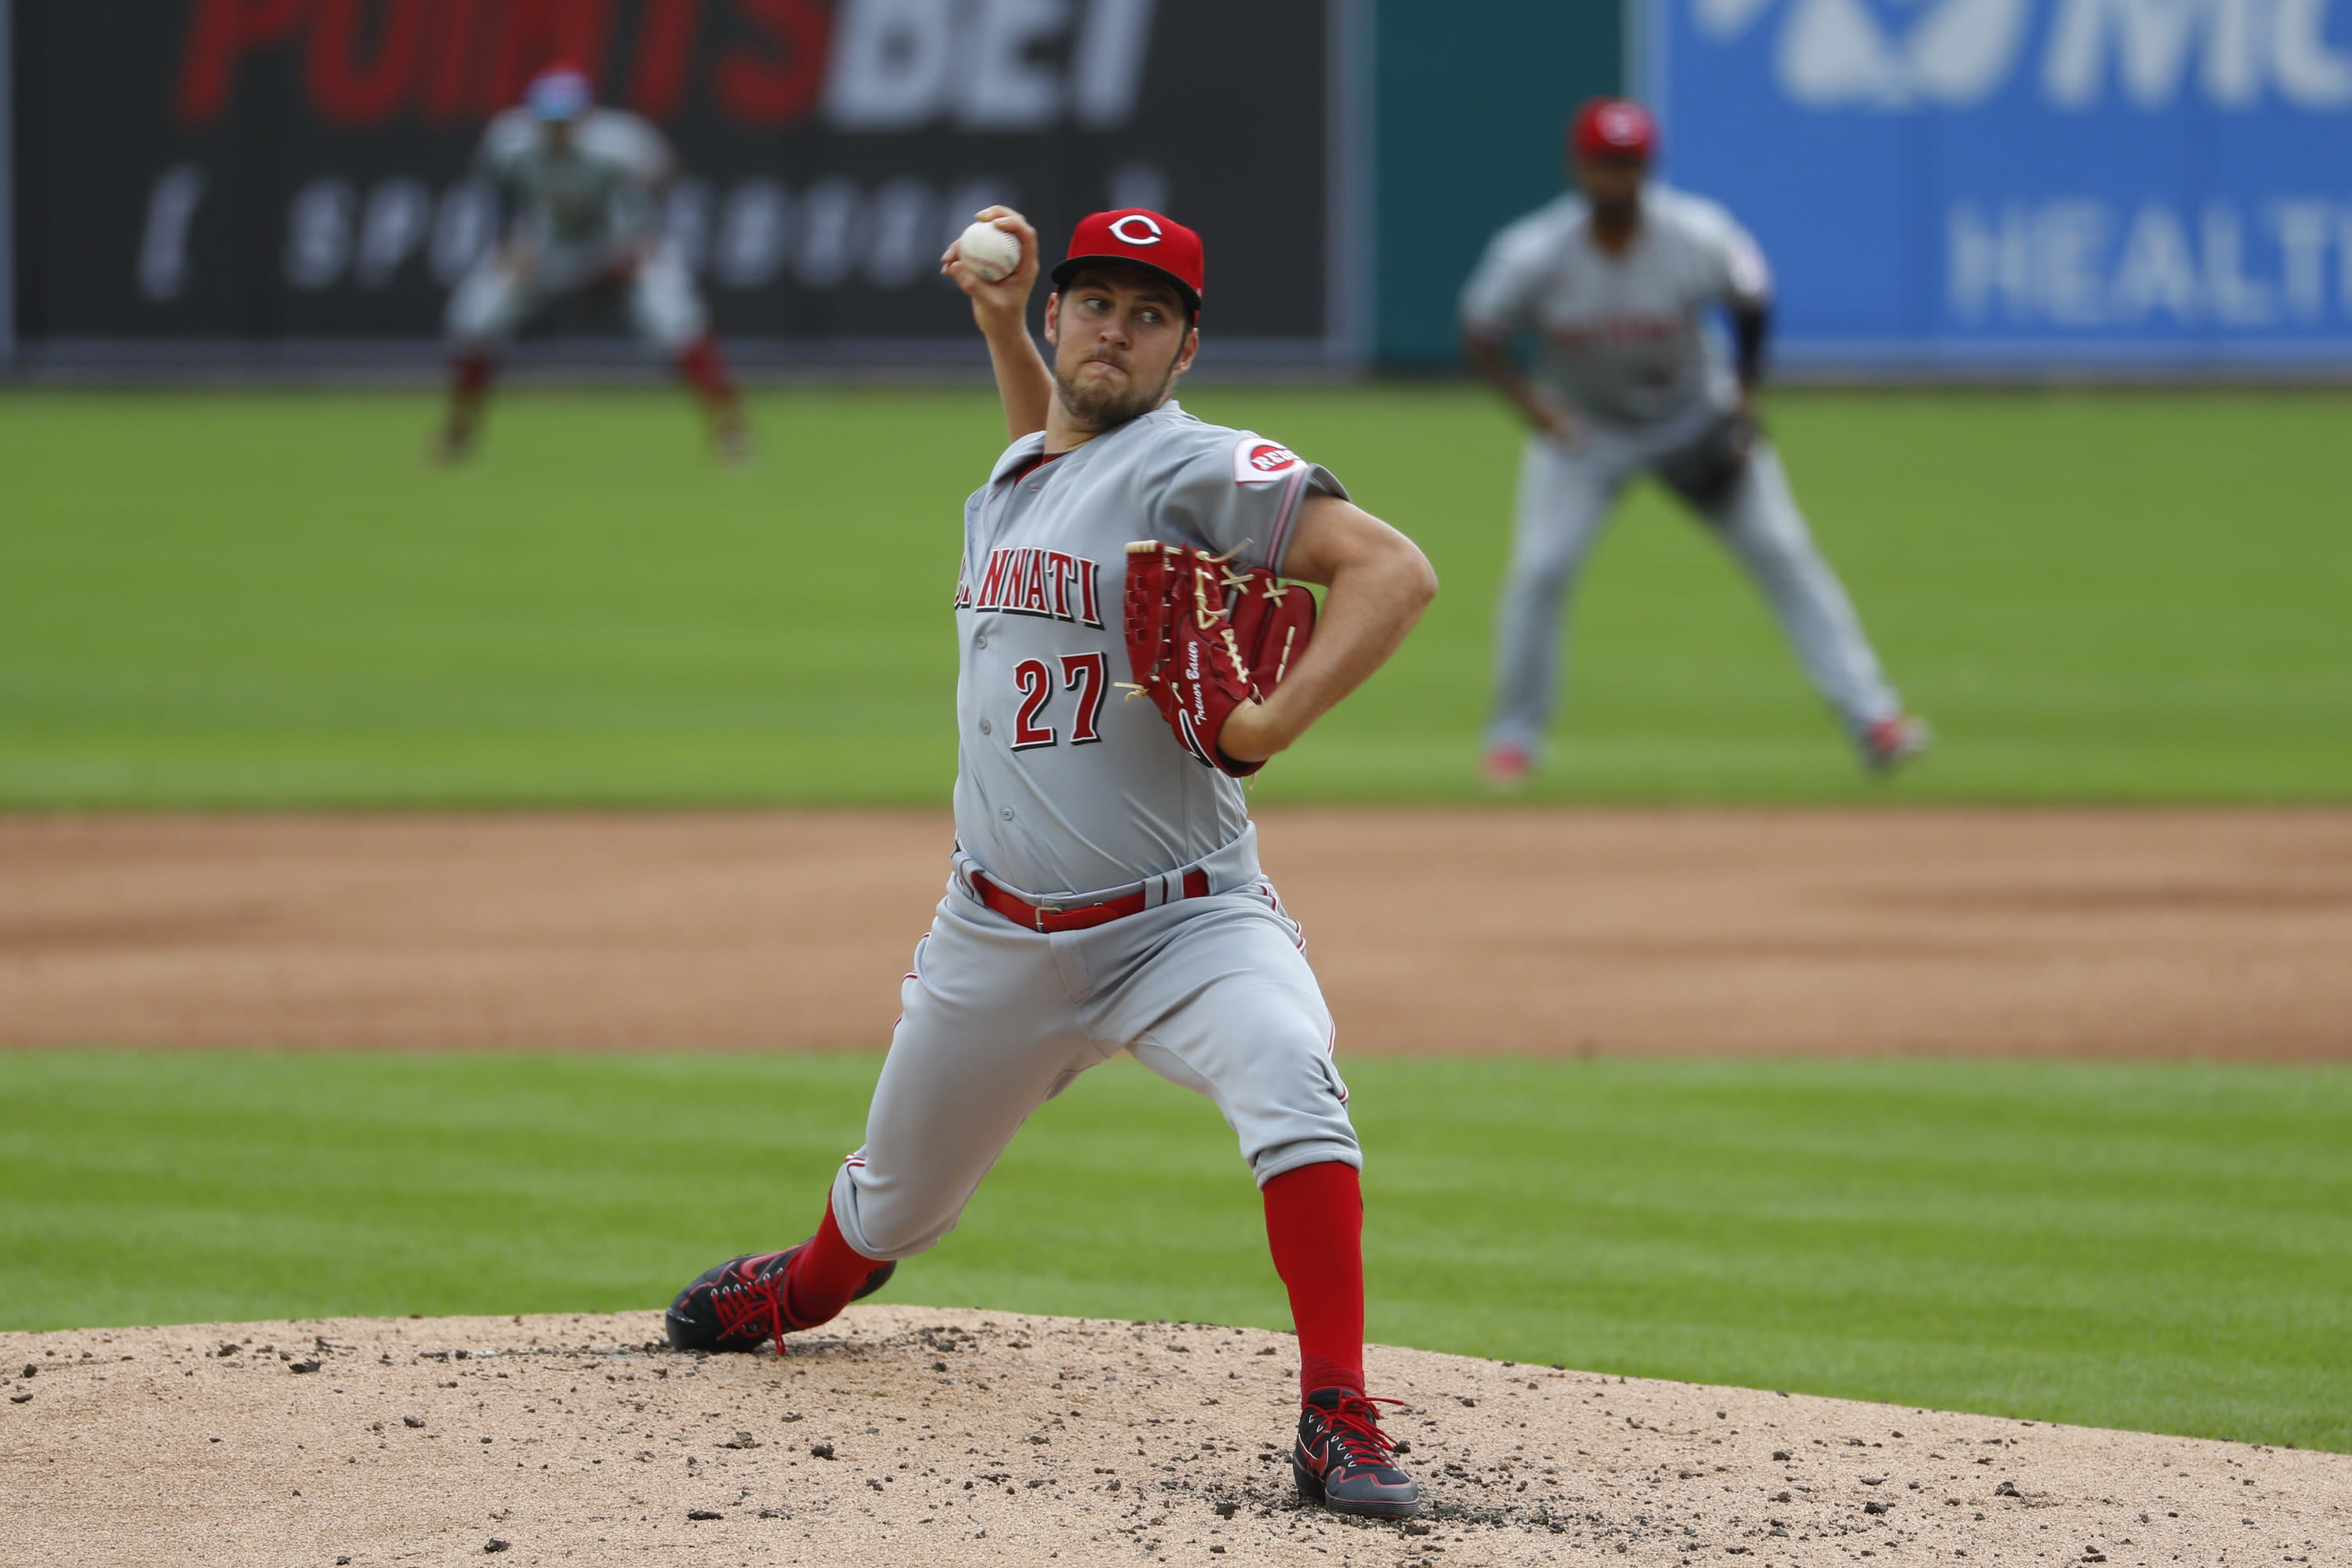 Cincinnati Reds pitcher Trevor Bauer throws to a Detroit Tigers batter during the first inning of the second baseball game of a doubleheader in Detroit, Sunday, Aug. 2, 2020. (AP Photo/Paul Sancya)